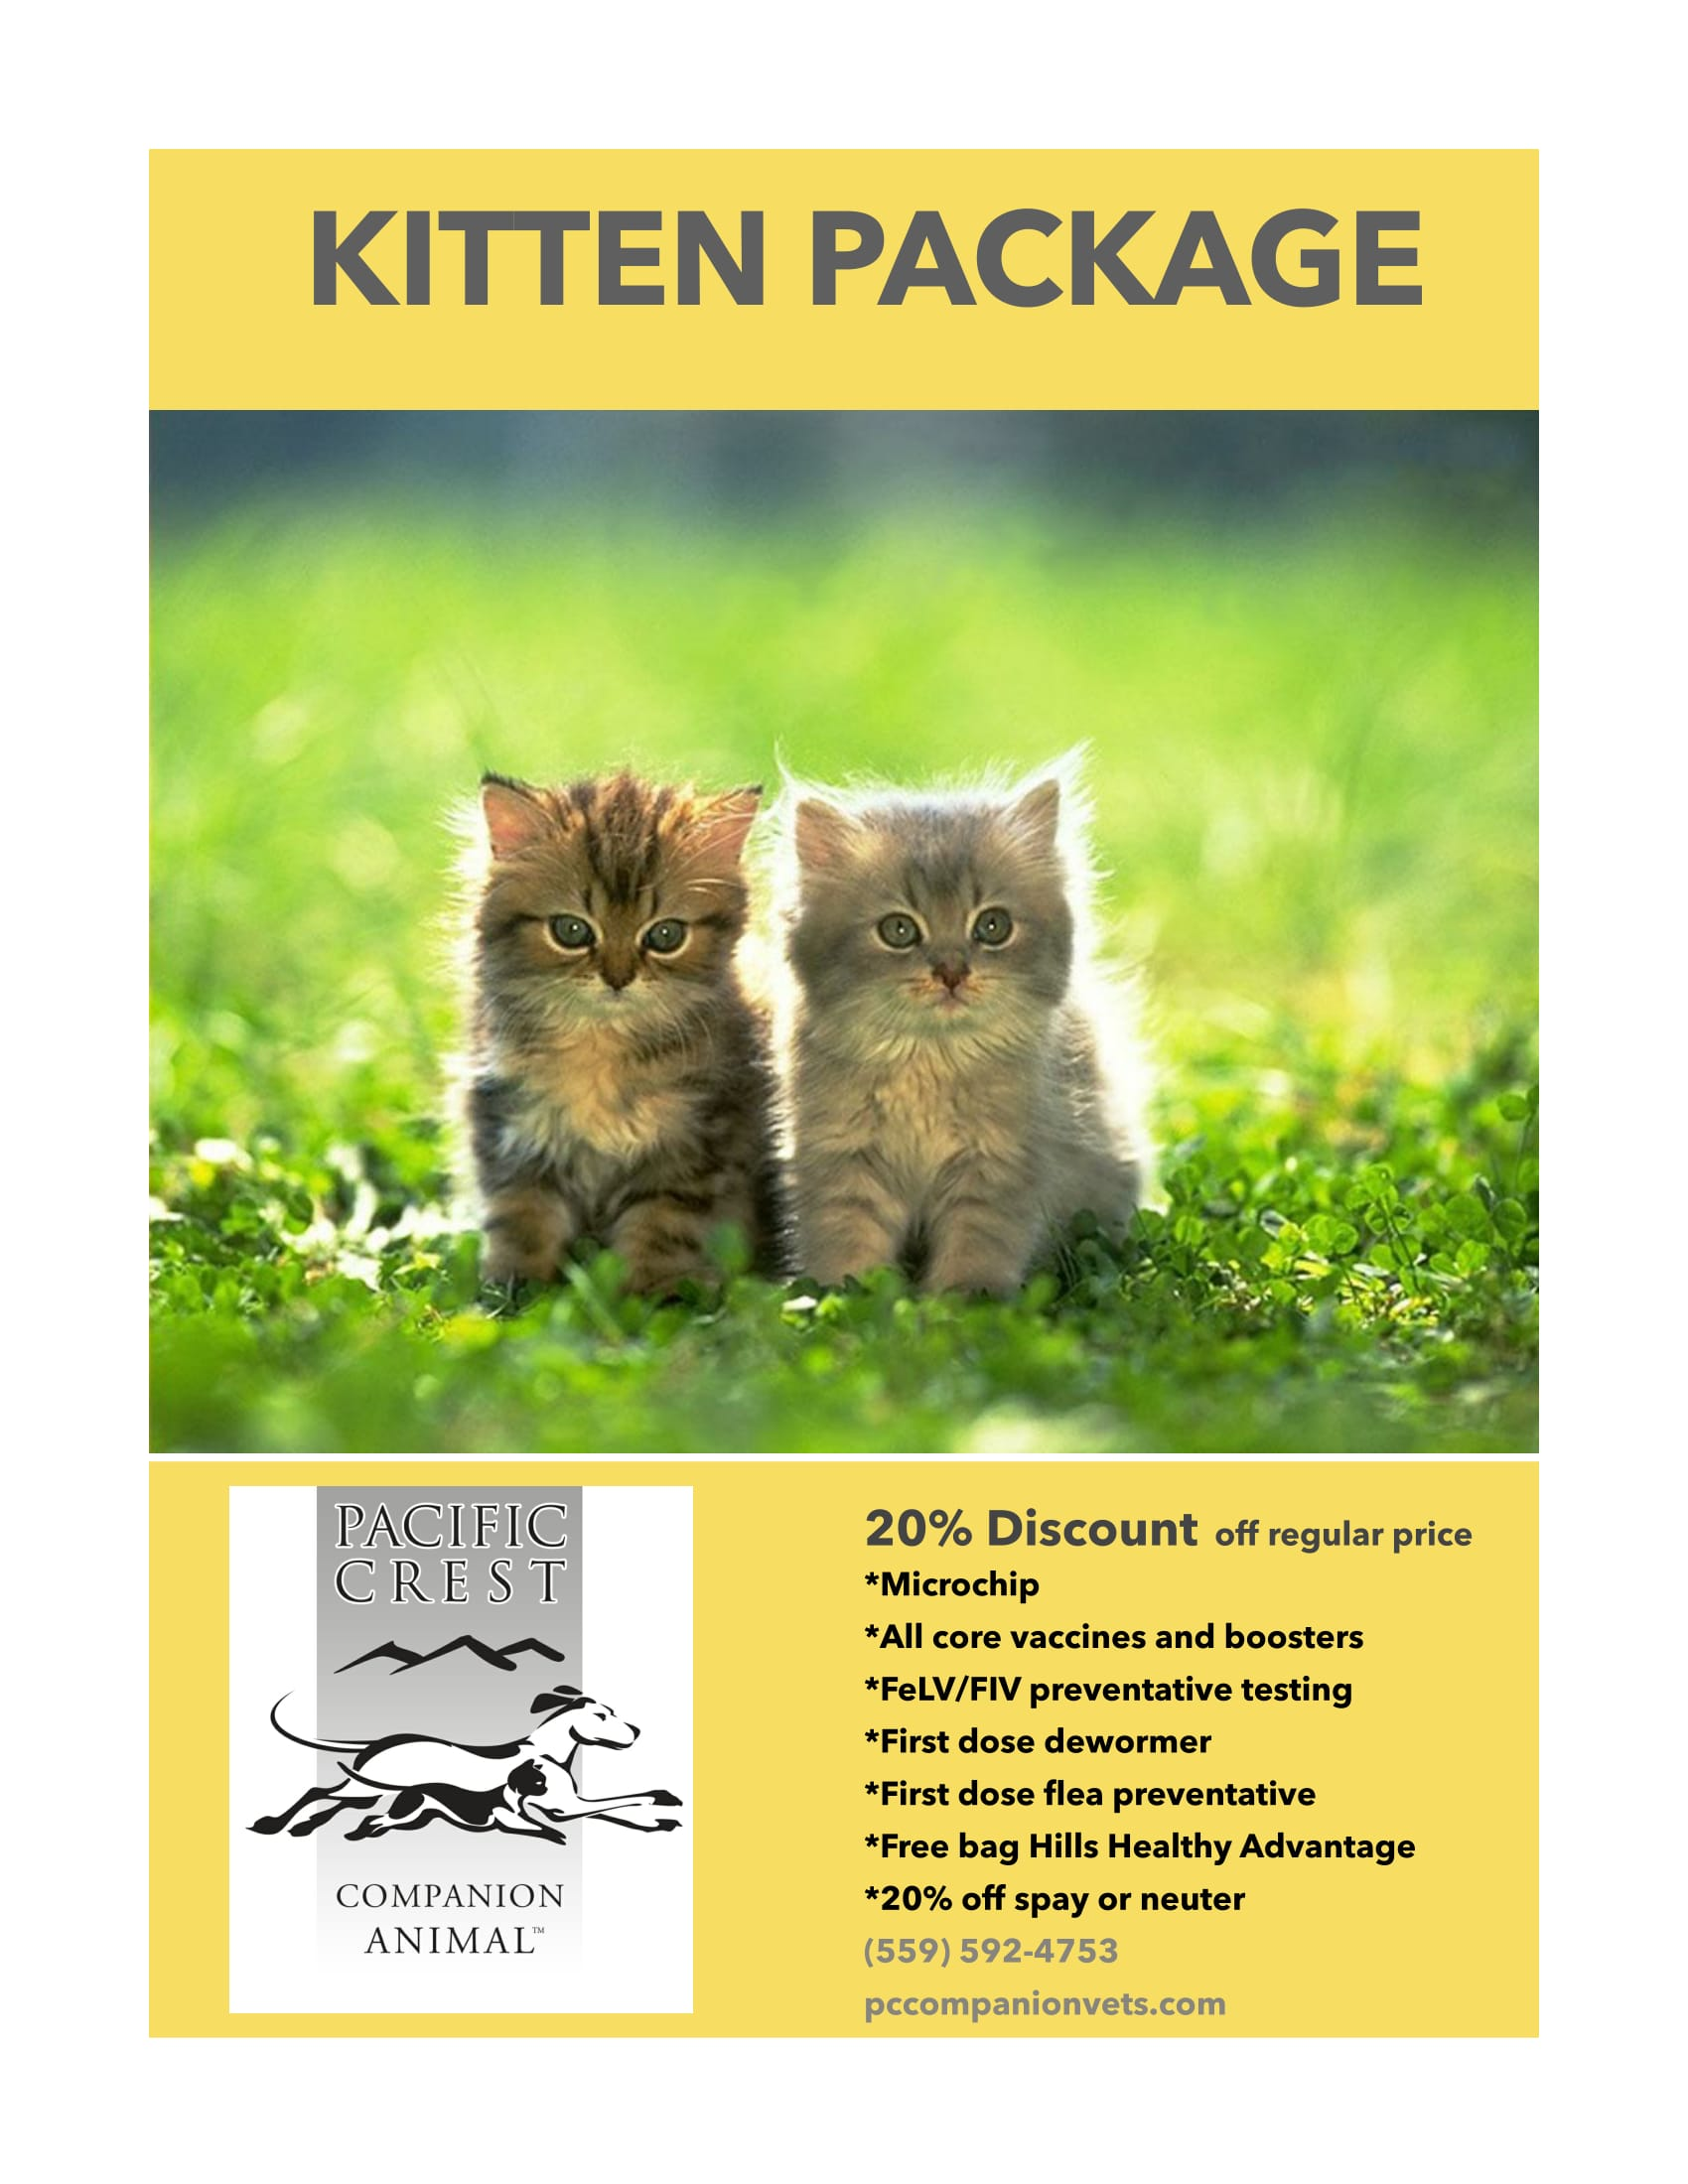 kitten package budget vets